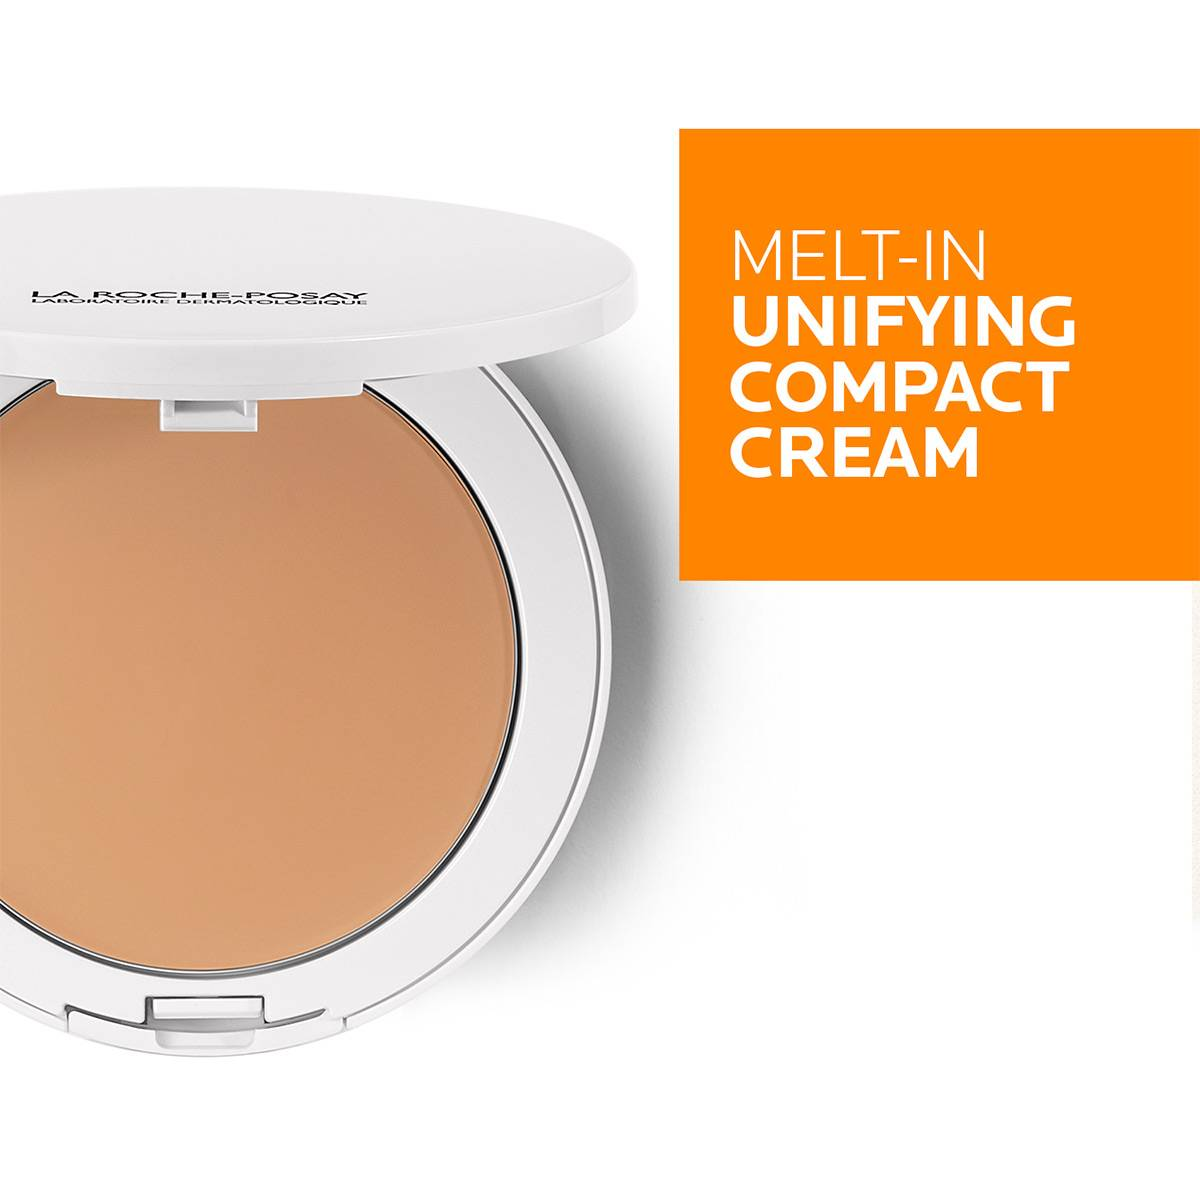 La Roche Posay ProductPage Sun Anthelios XL Compact Spf50 Shade 01 9g